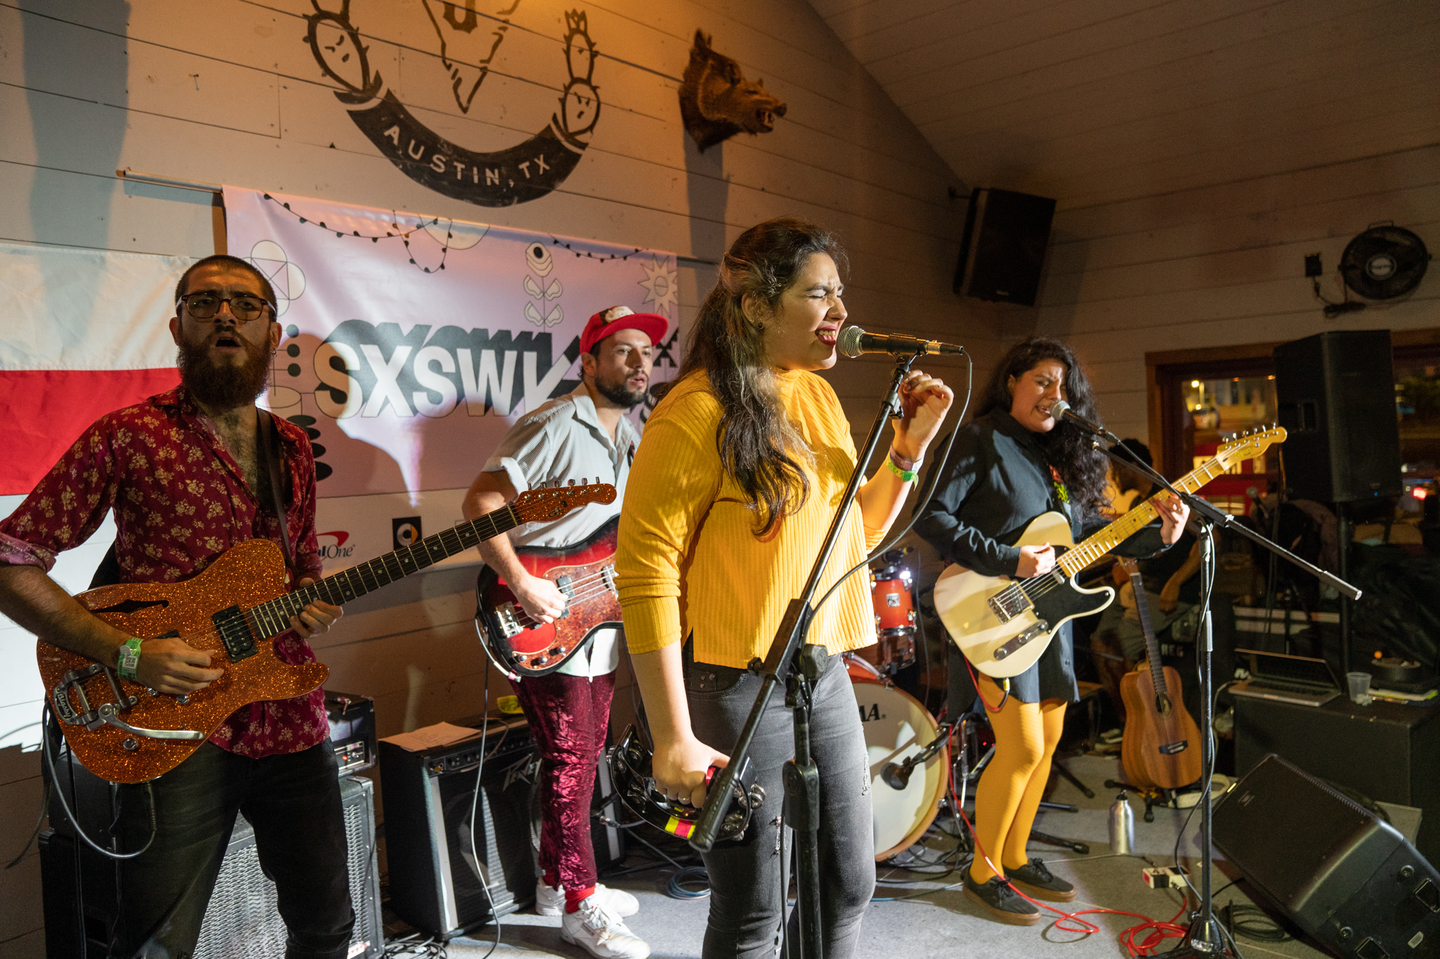 Yorka performs at the Sounds from Chile showcase at Javalina.